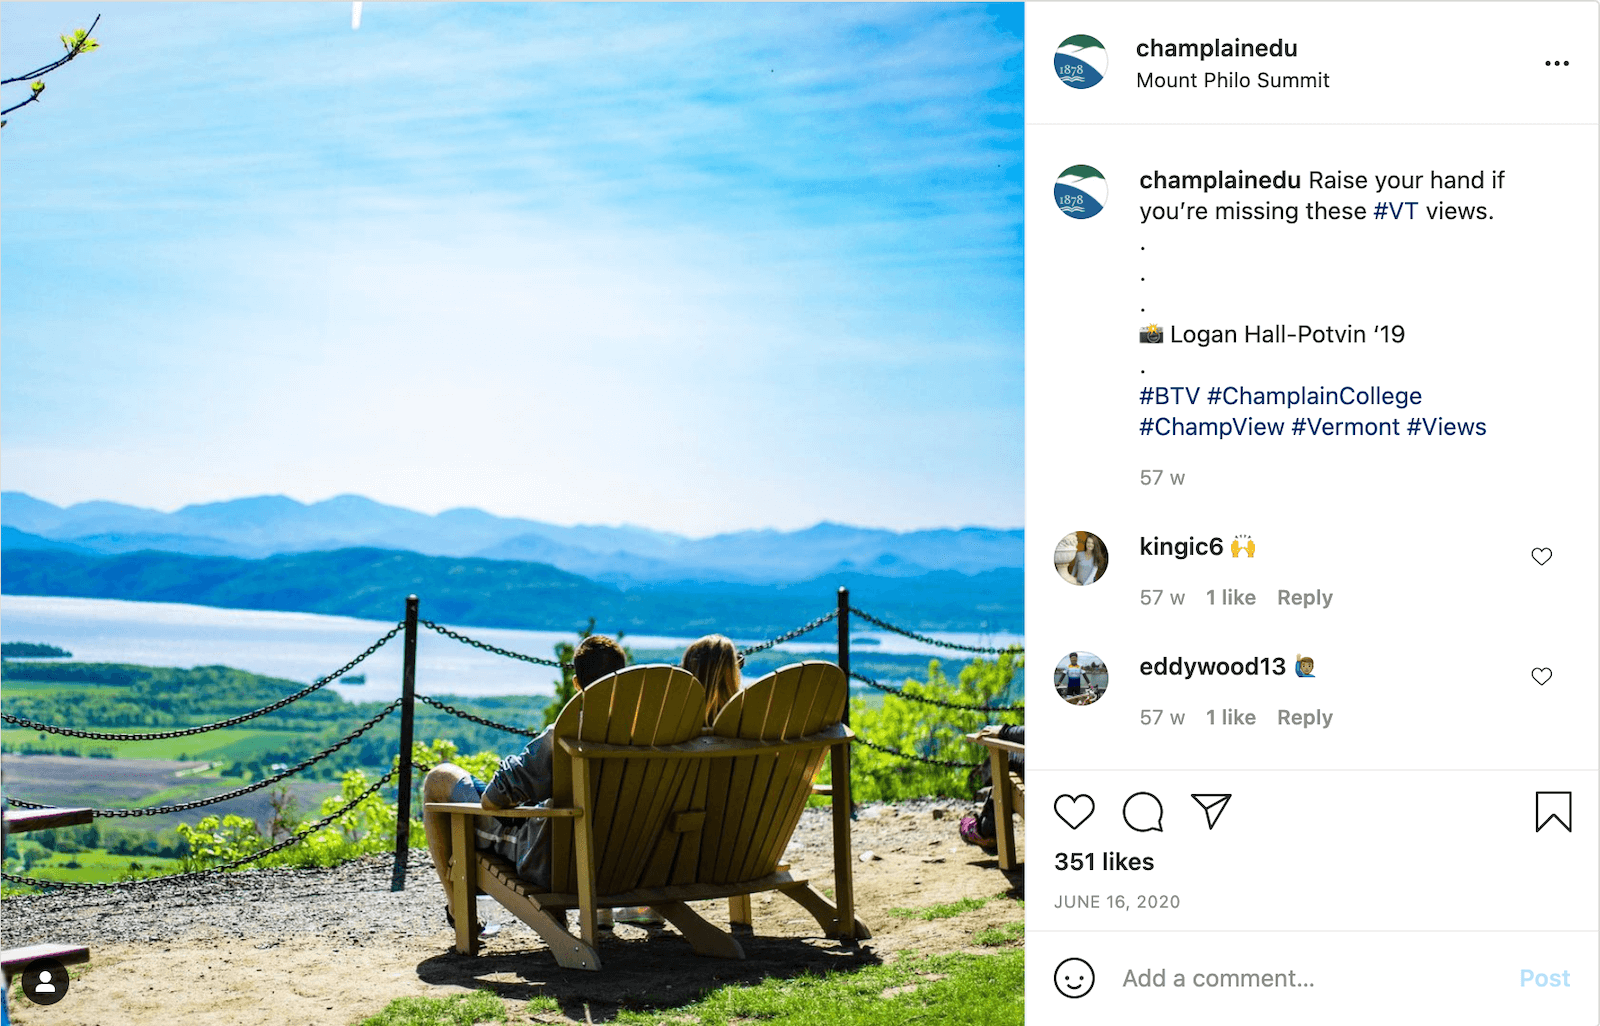 """Instagram post by champlainedu showing two people from the back as they're sitting on a bench and looking out over the beautiful Vermont landscape. The caption reads, """"Raise your hand if you're missing these #VT views."""""""